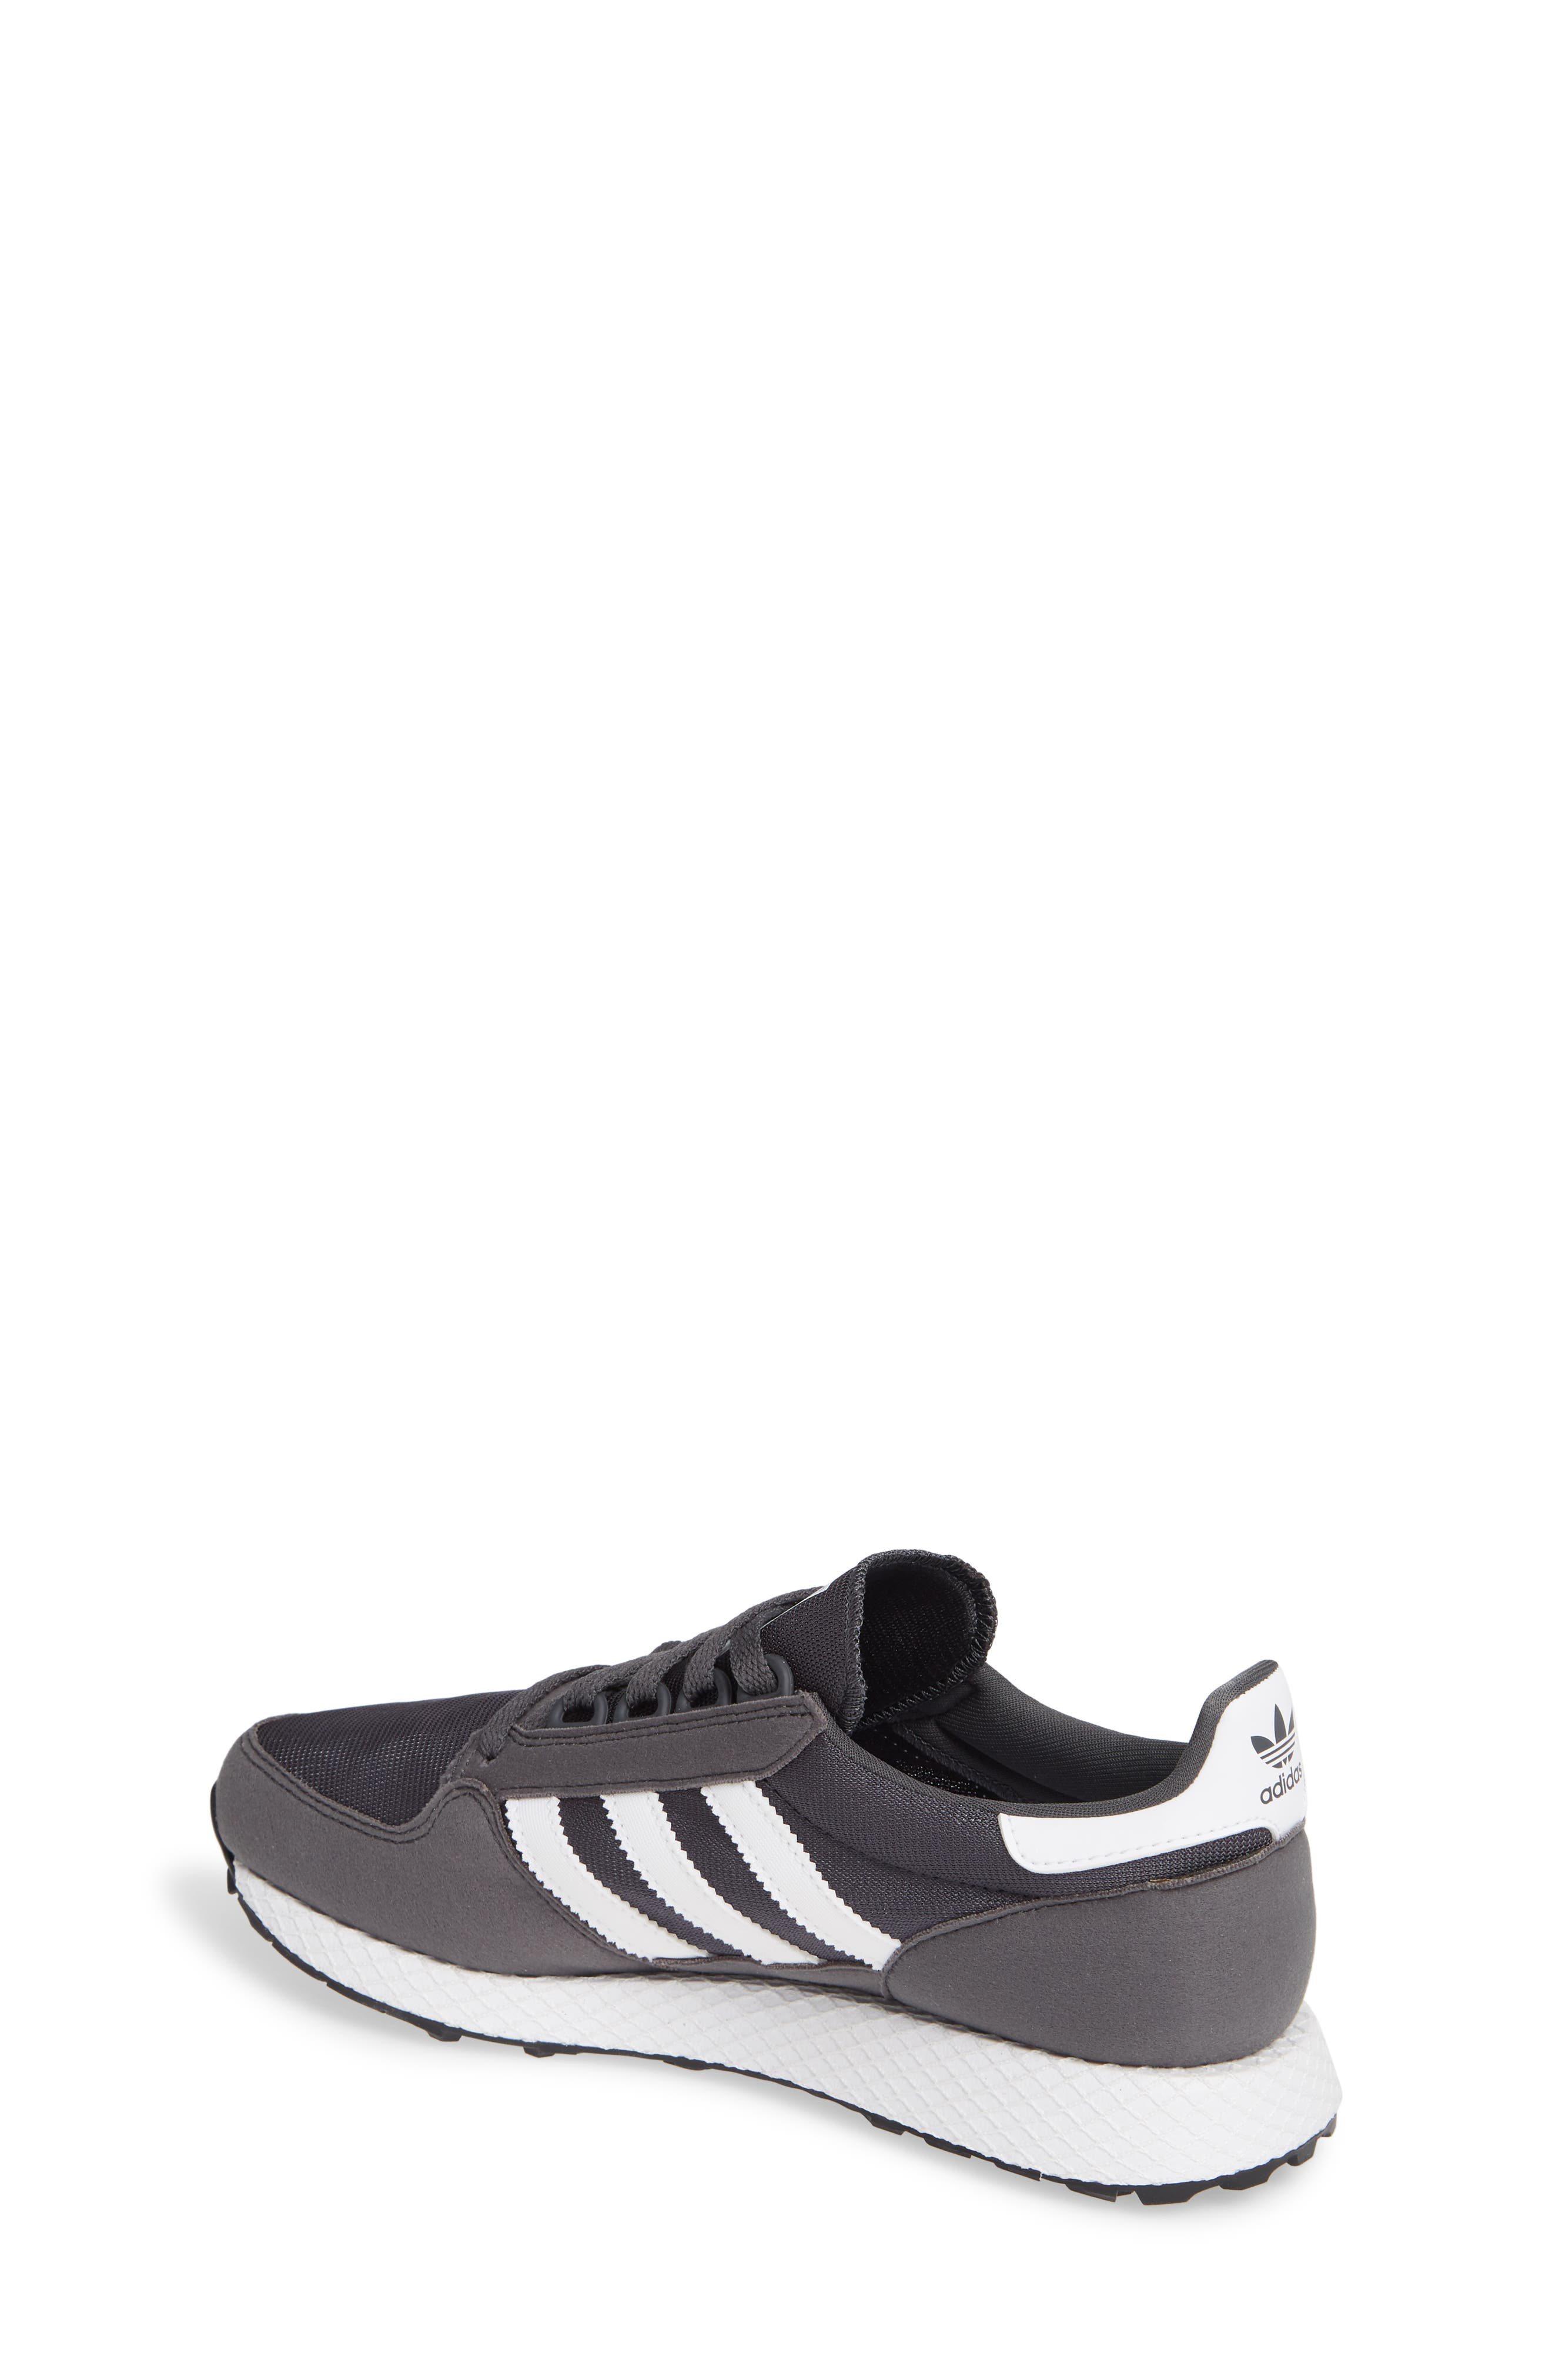 ADIDAS, Forest Grove Sneaker, Alternate thumbnail 2, color, GREY SIX/ WHITE/ GREY SIX